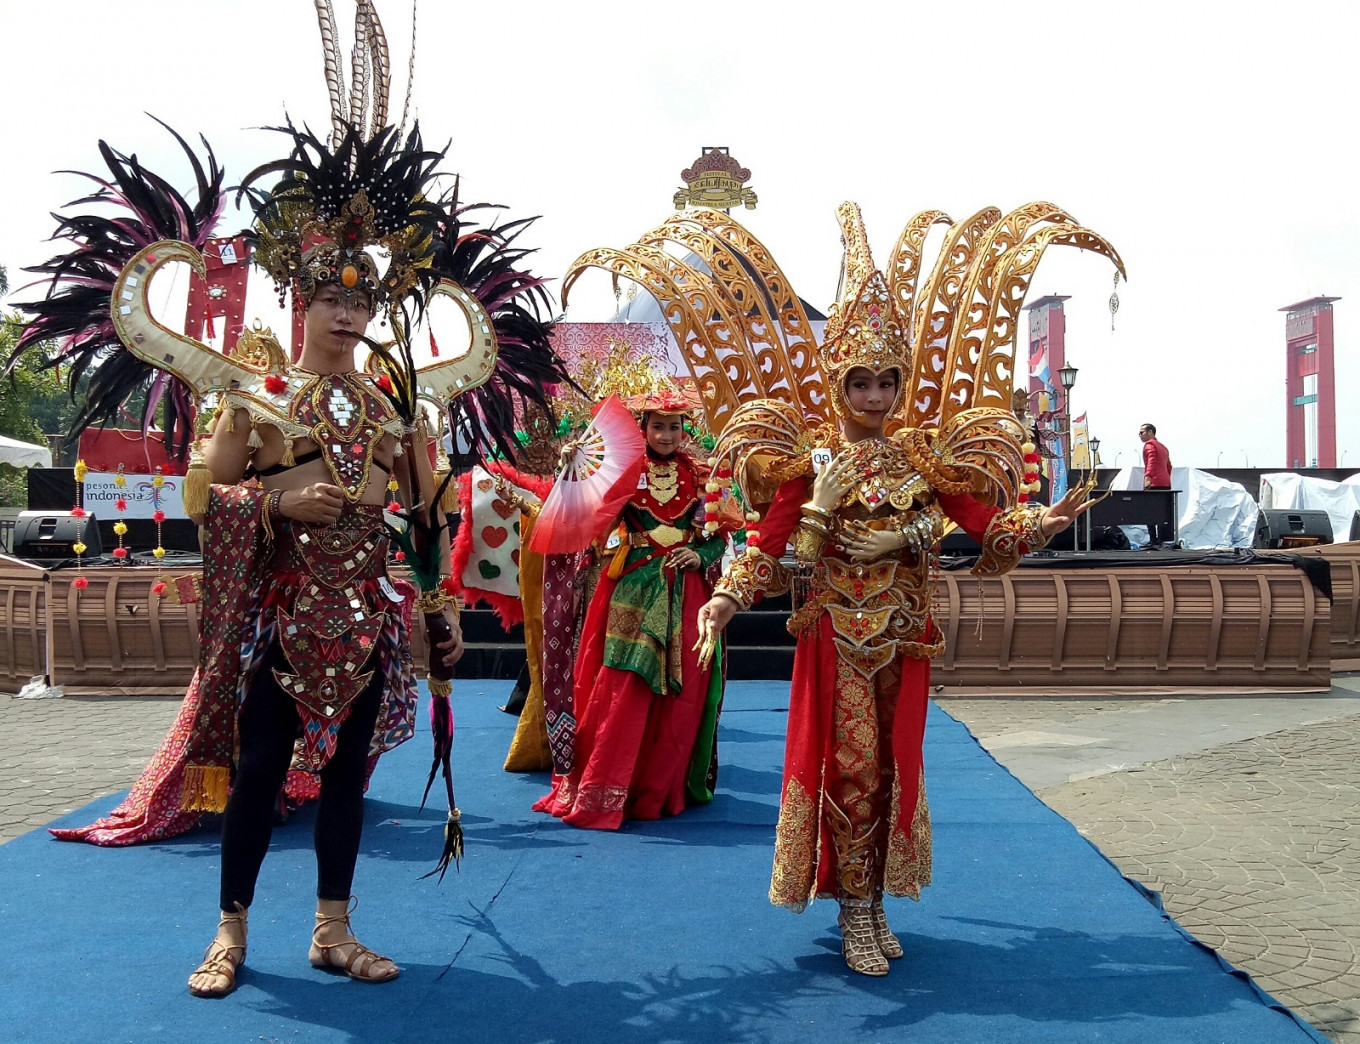 Sriwijaya XXVIII Festival in Palembang struggles to attract tourists